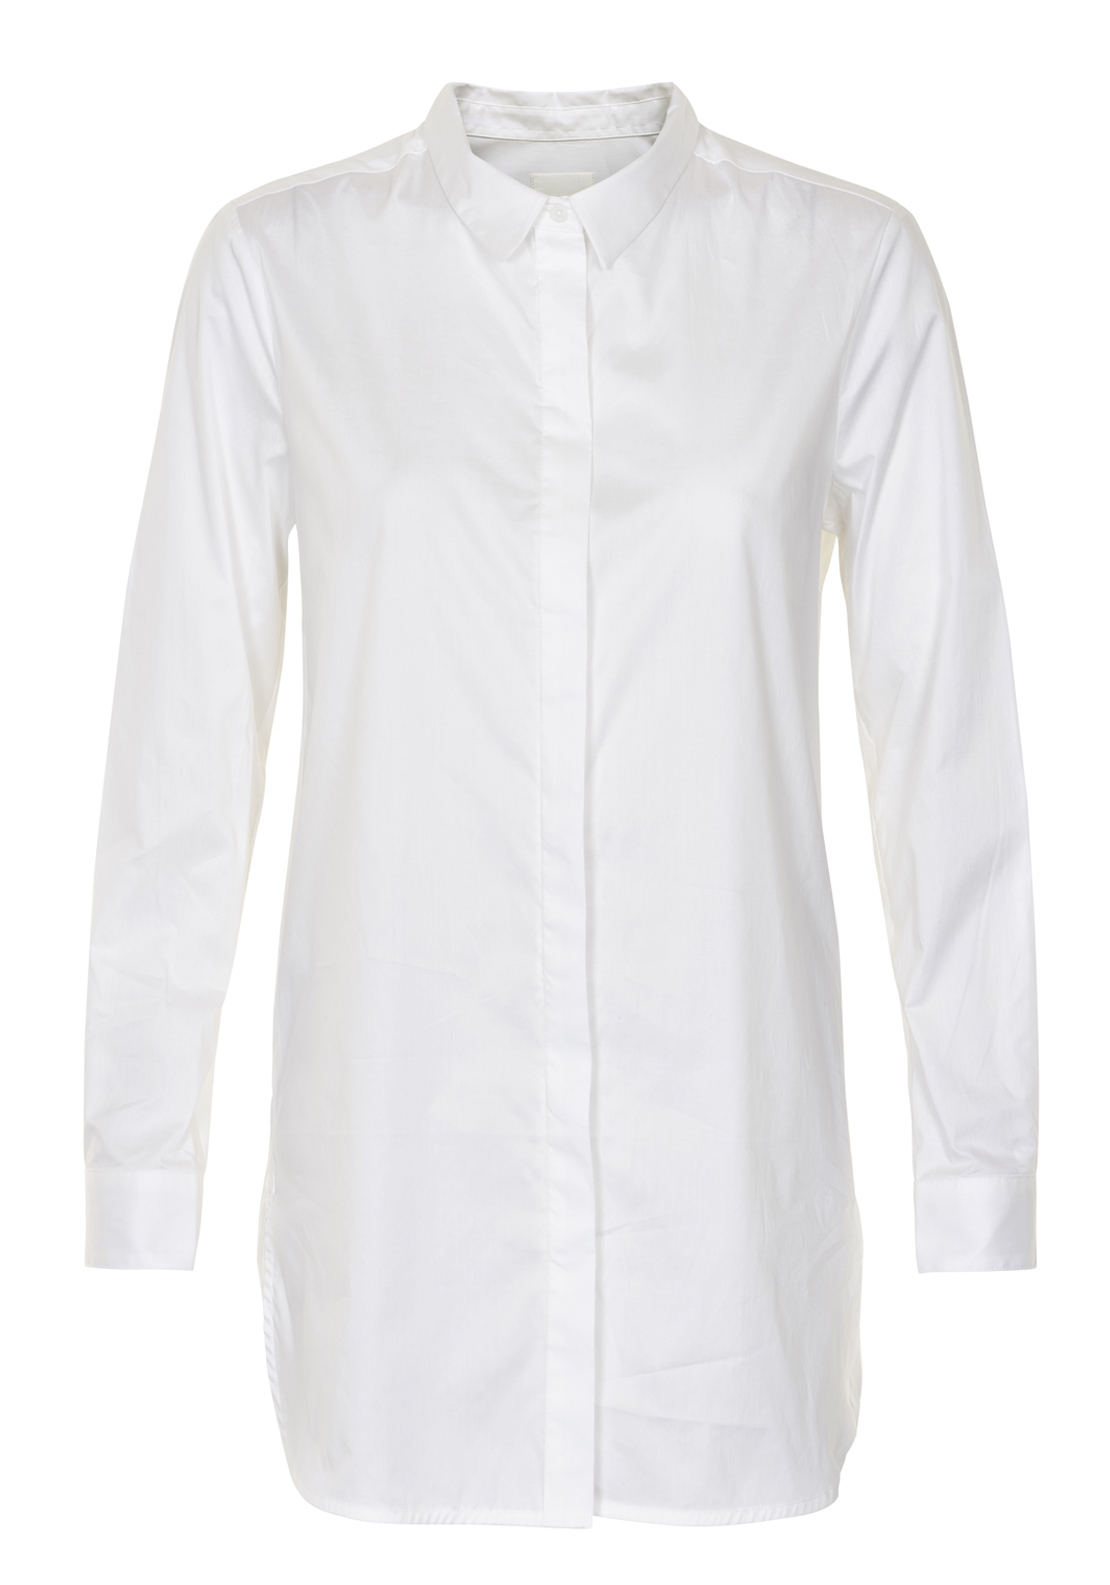 Inwear Ninette Long Length Classic Blouse, White